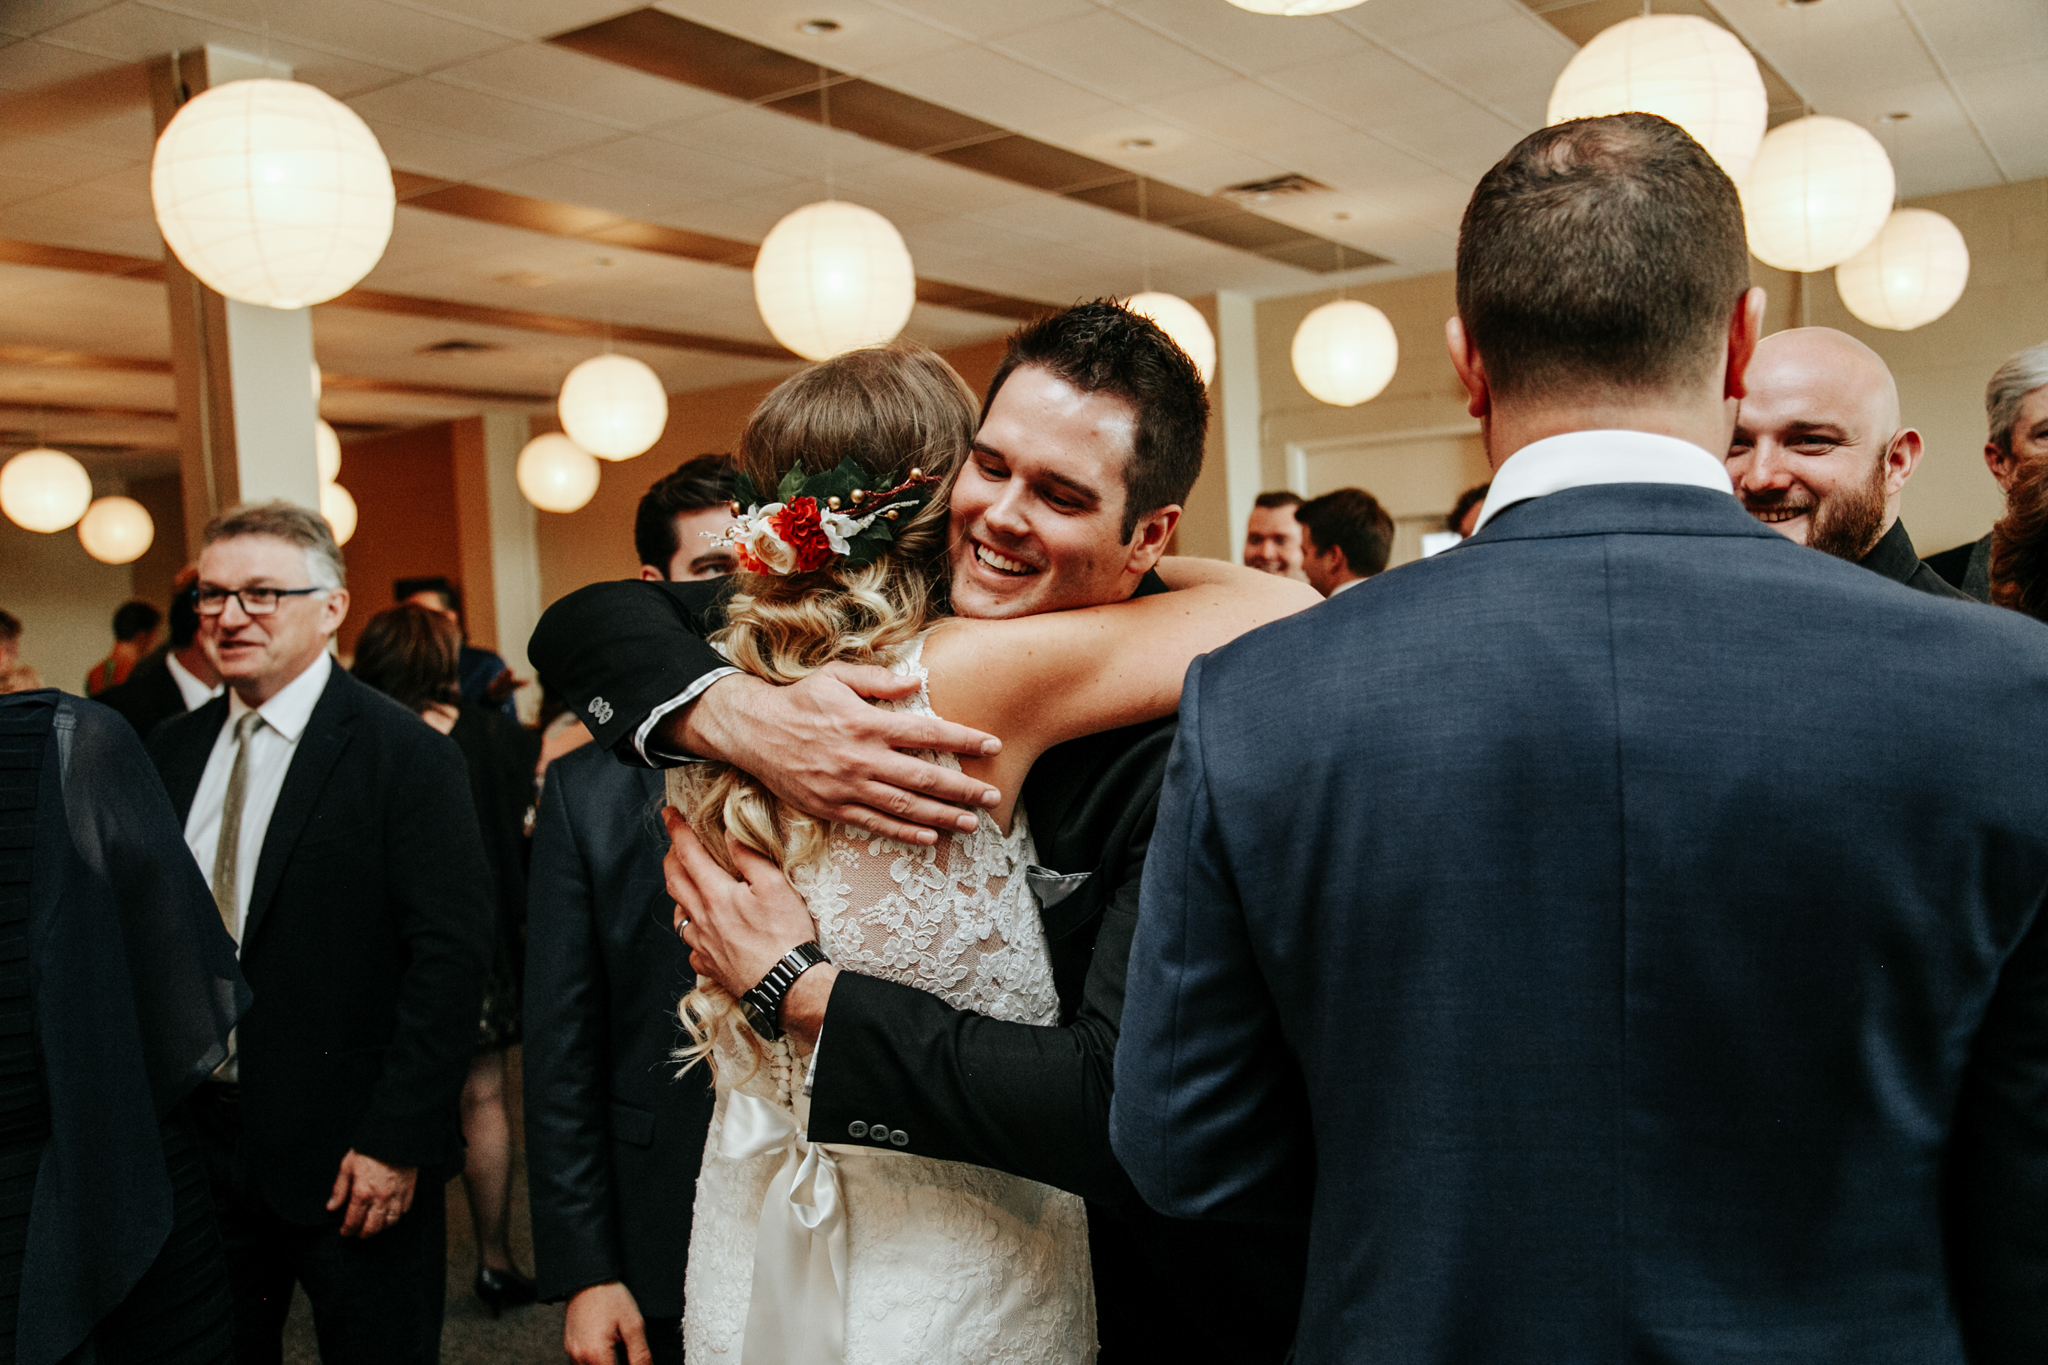 lethbridge-wedding-photography-love-and-be-loved-rocky-mountain-turf-club-ceremony-picture-image-photo-27.jpg